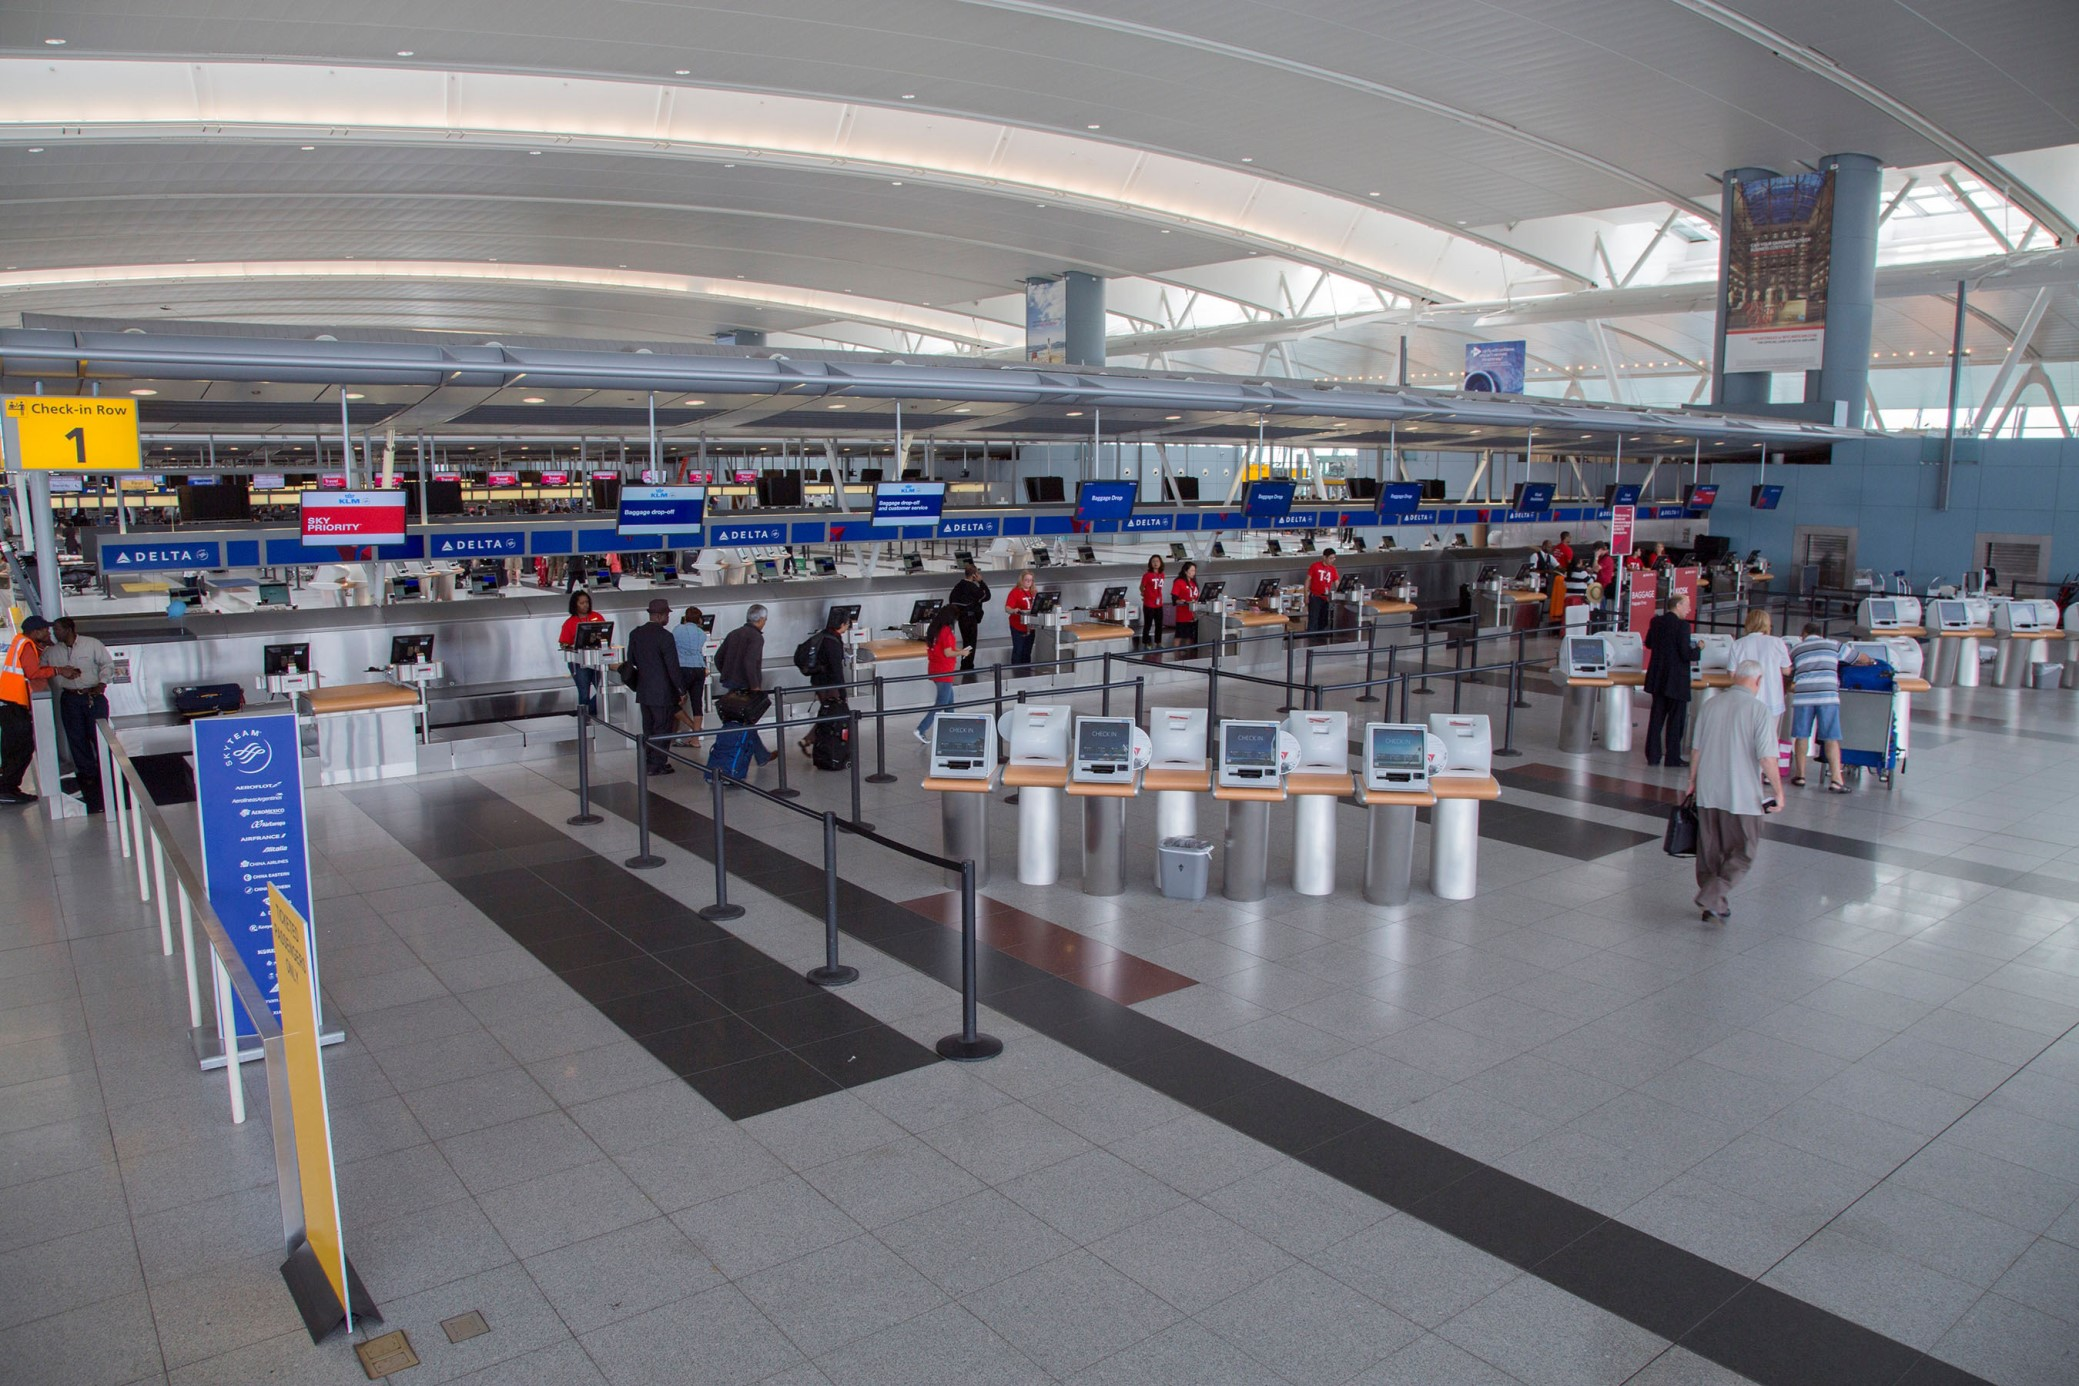 http://www.futuretravelexperience.com/2015/08/real-time-queue-measurement-system-goes-live-jfk-terminal-4/